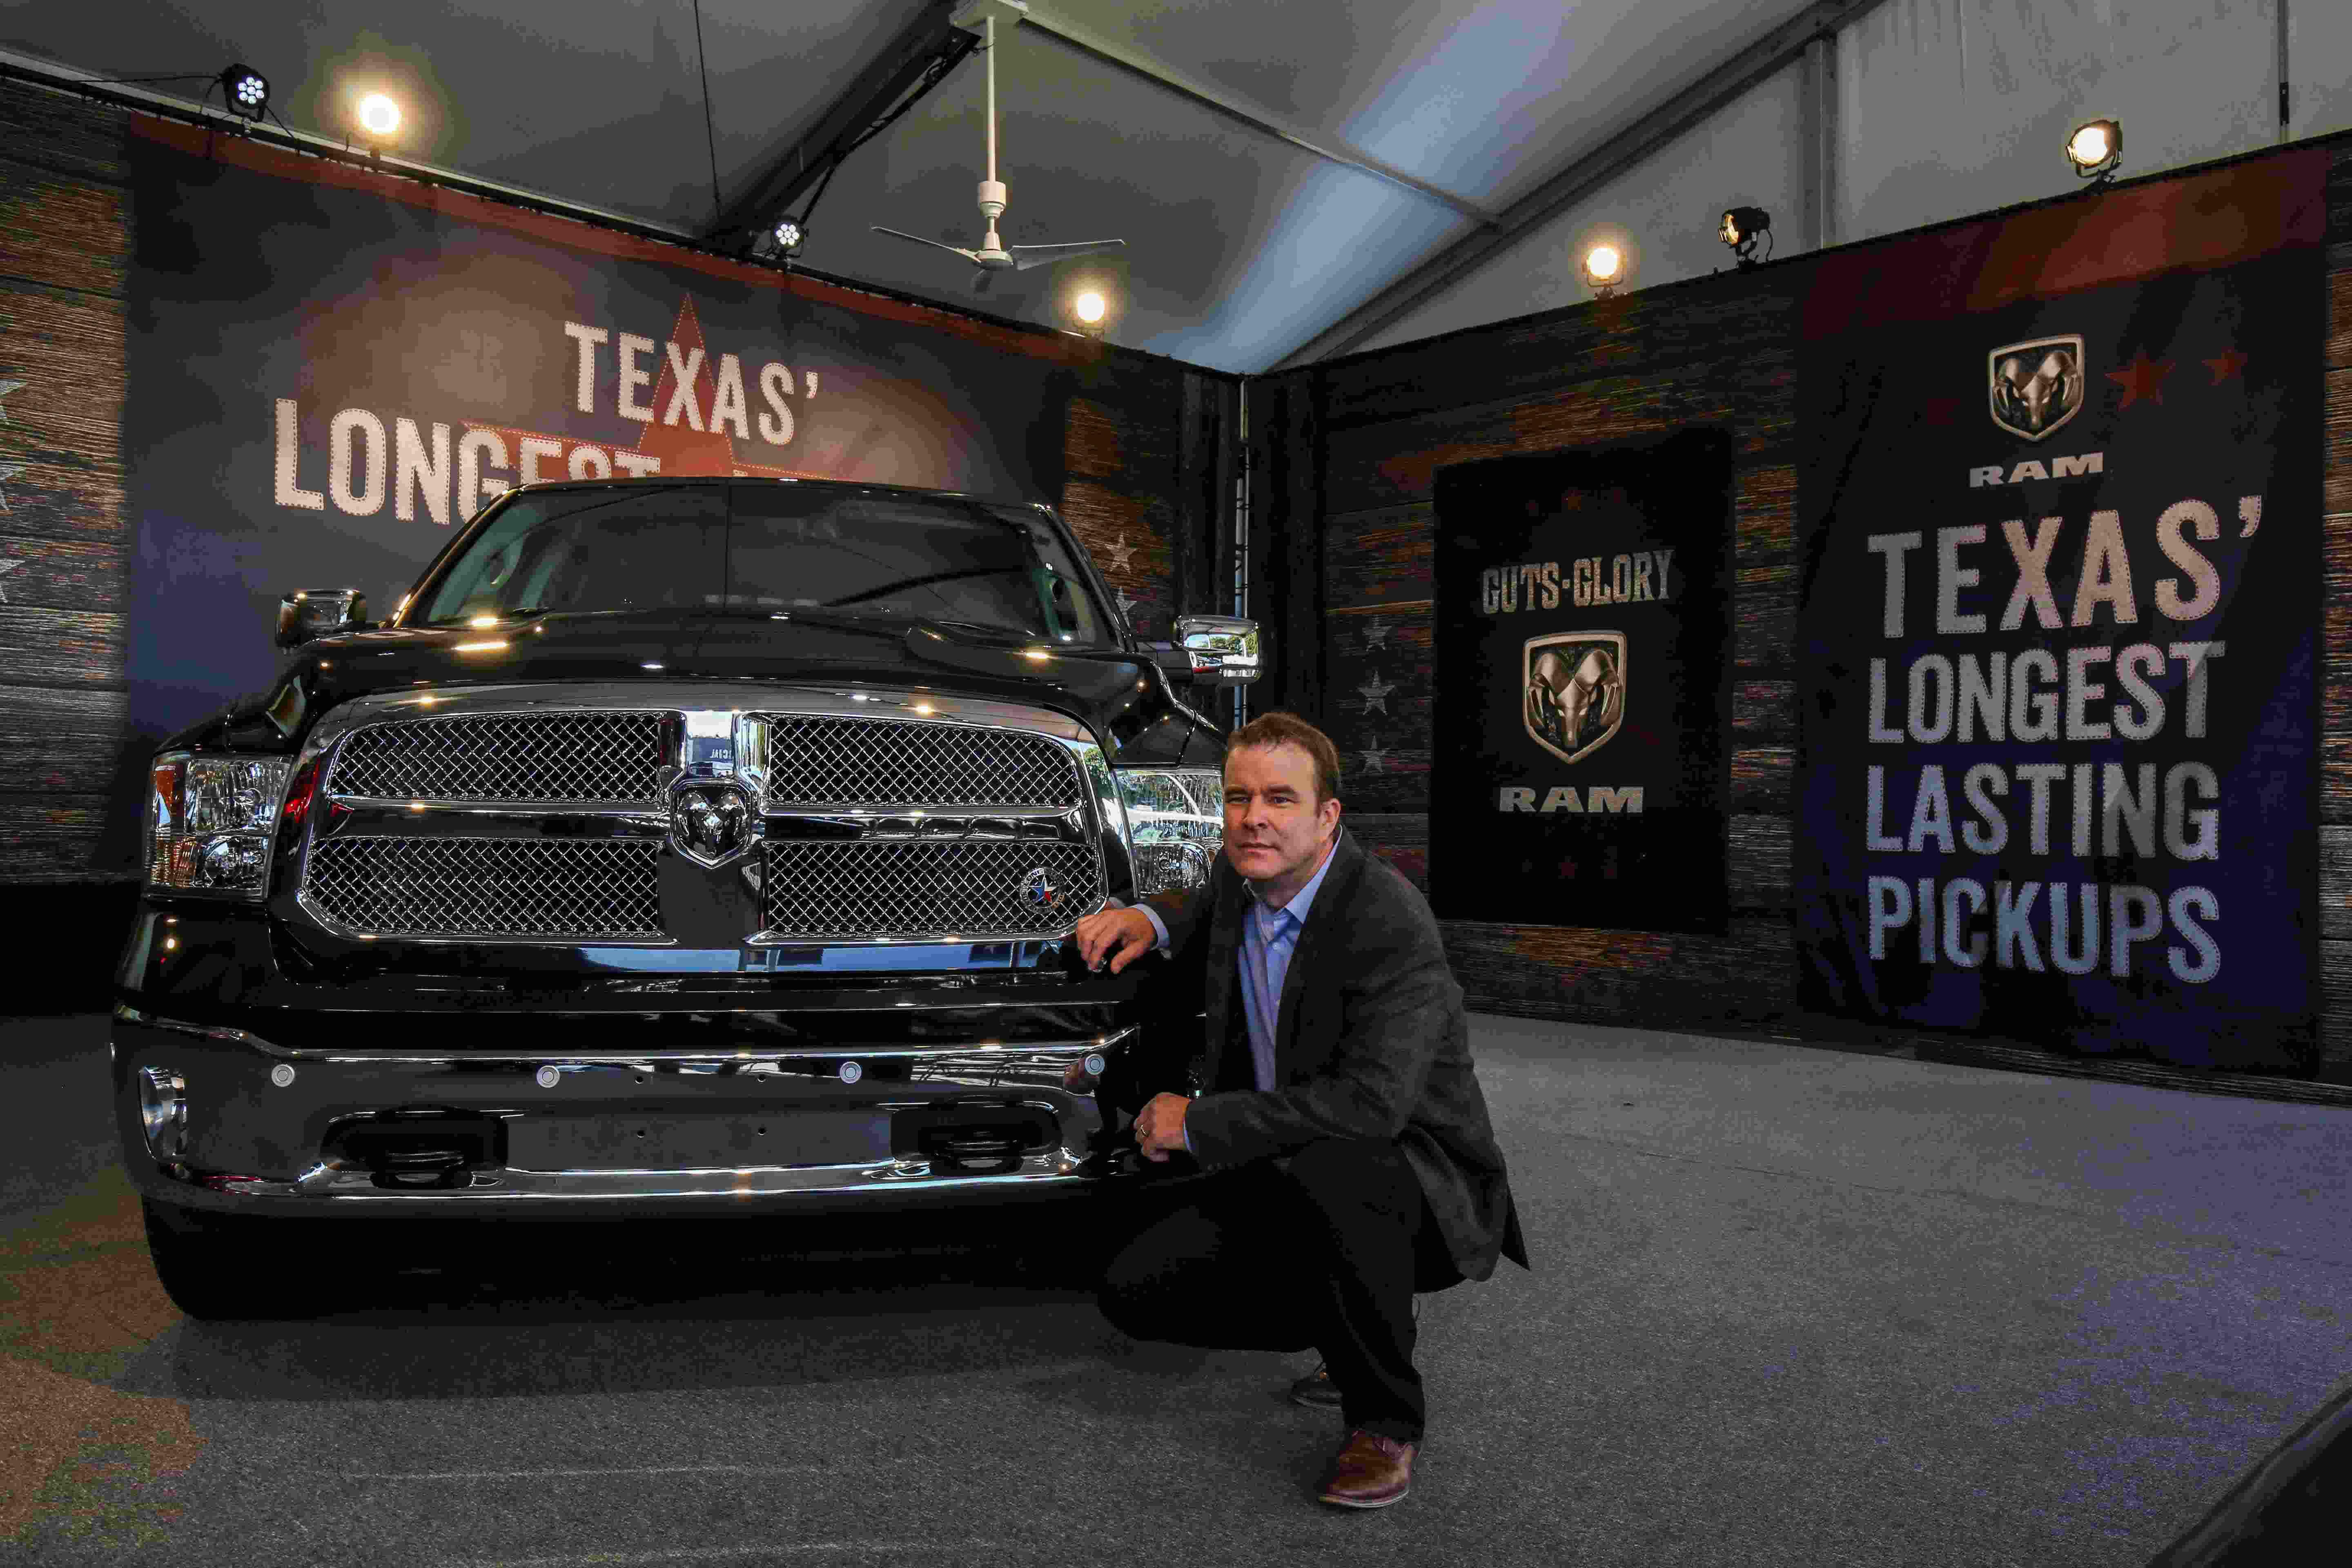 Ram unveils 2017 updates for Lone Star Laramie Longhorn and Limited